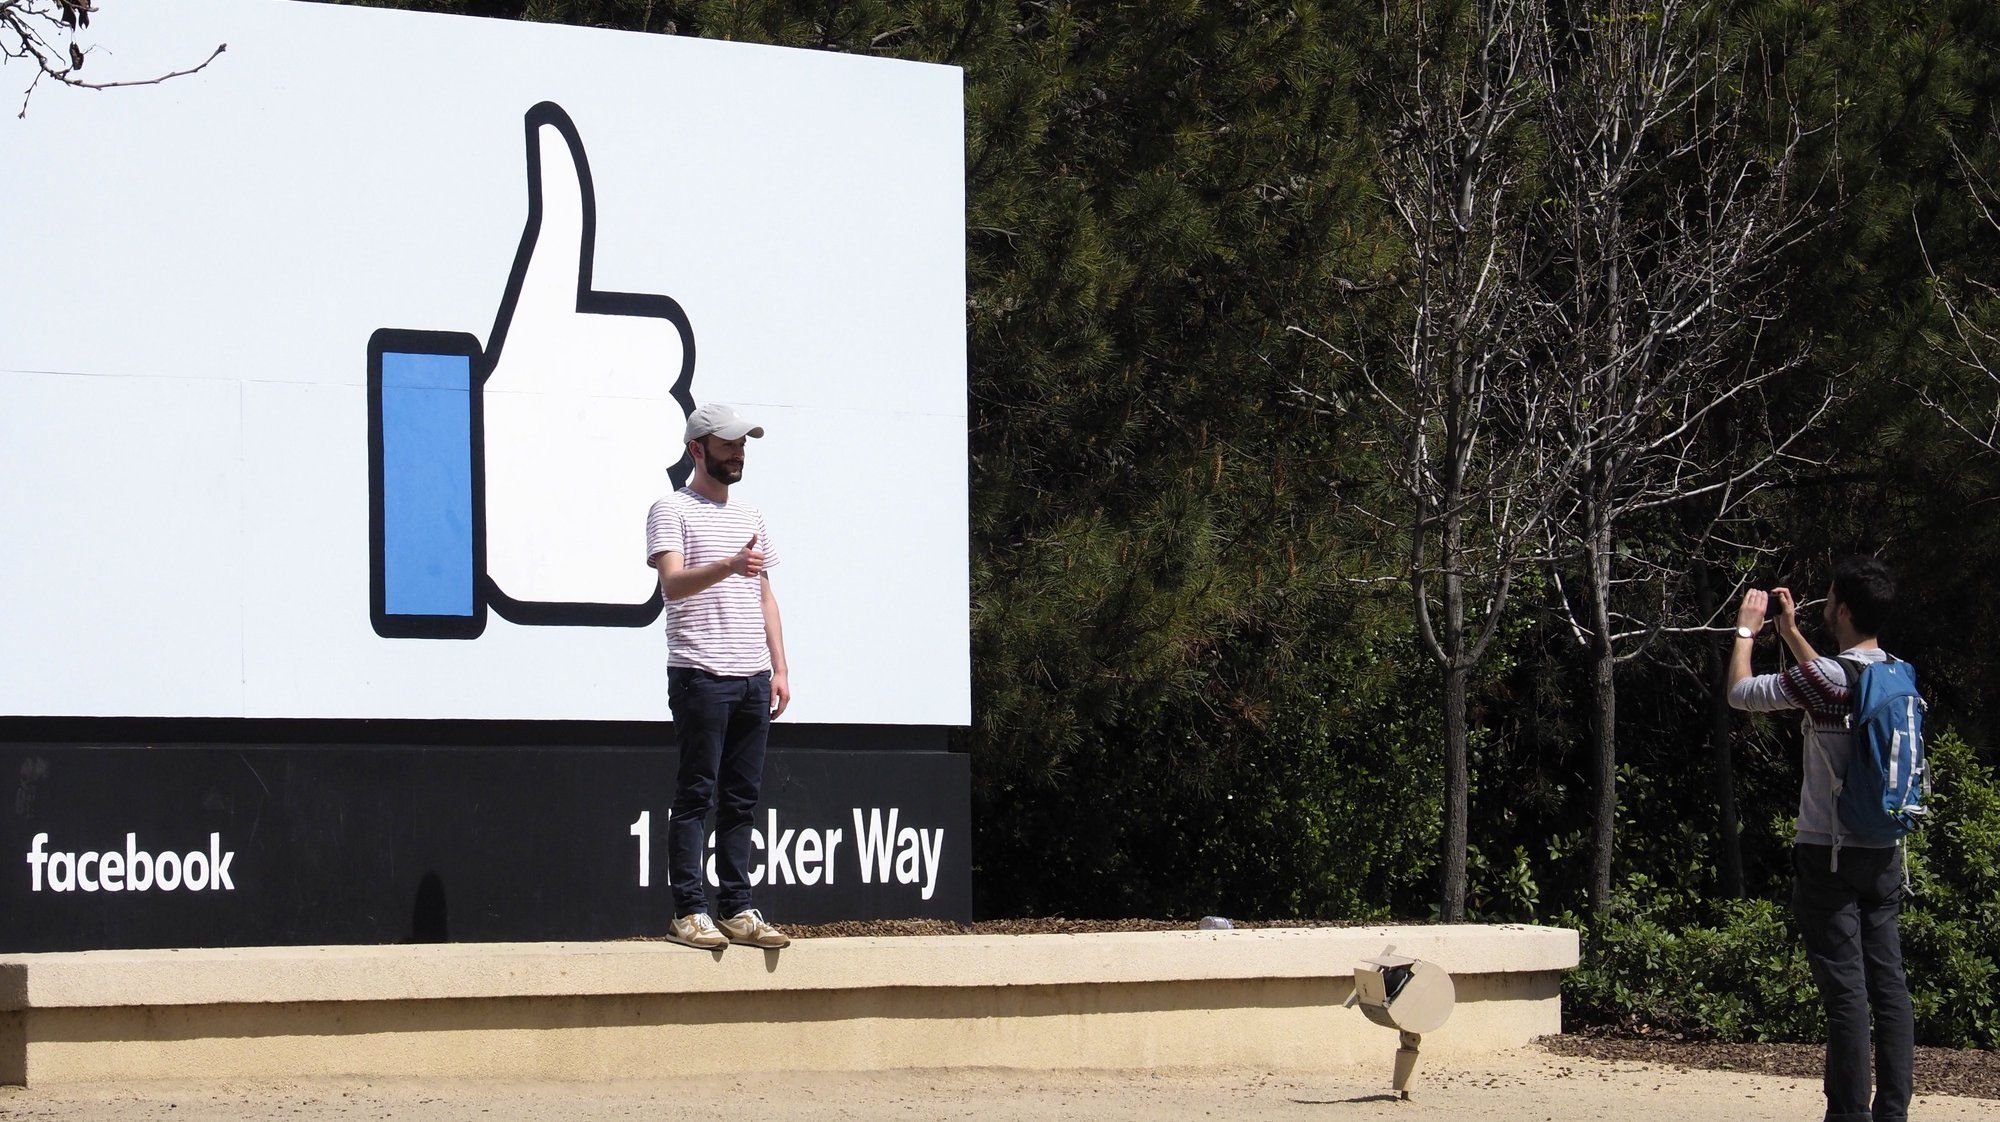 epa08967901 (FILE) -  A person has his picture taken in from of Facebook's 'Like' icon signage in front of their campus building in Menlo Park, California, USA, 30 March 2018 (reissued 26 January 2021). Facebook is to publish their 4th quarter 2020 results on 27 January 2021.  EPA/JOHN G. MABANGLO *** Local Caption *** 54232824